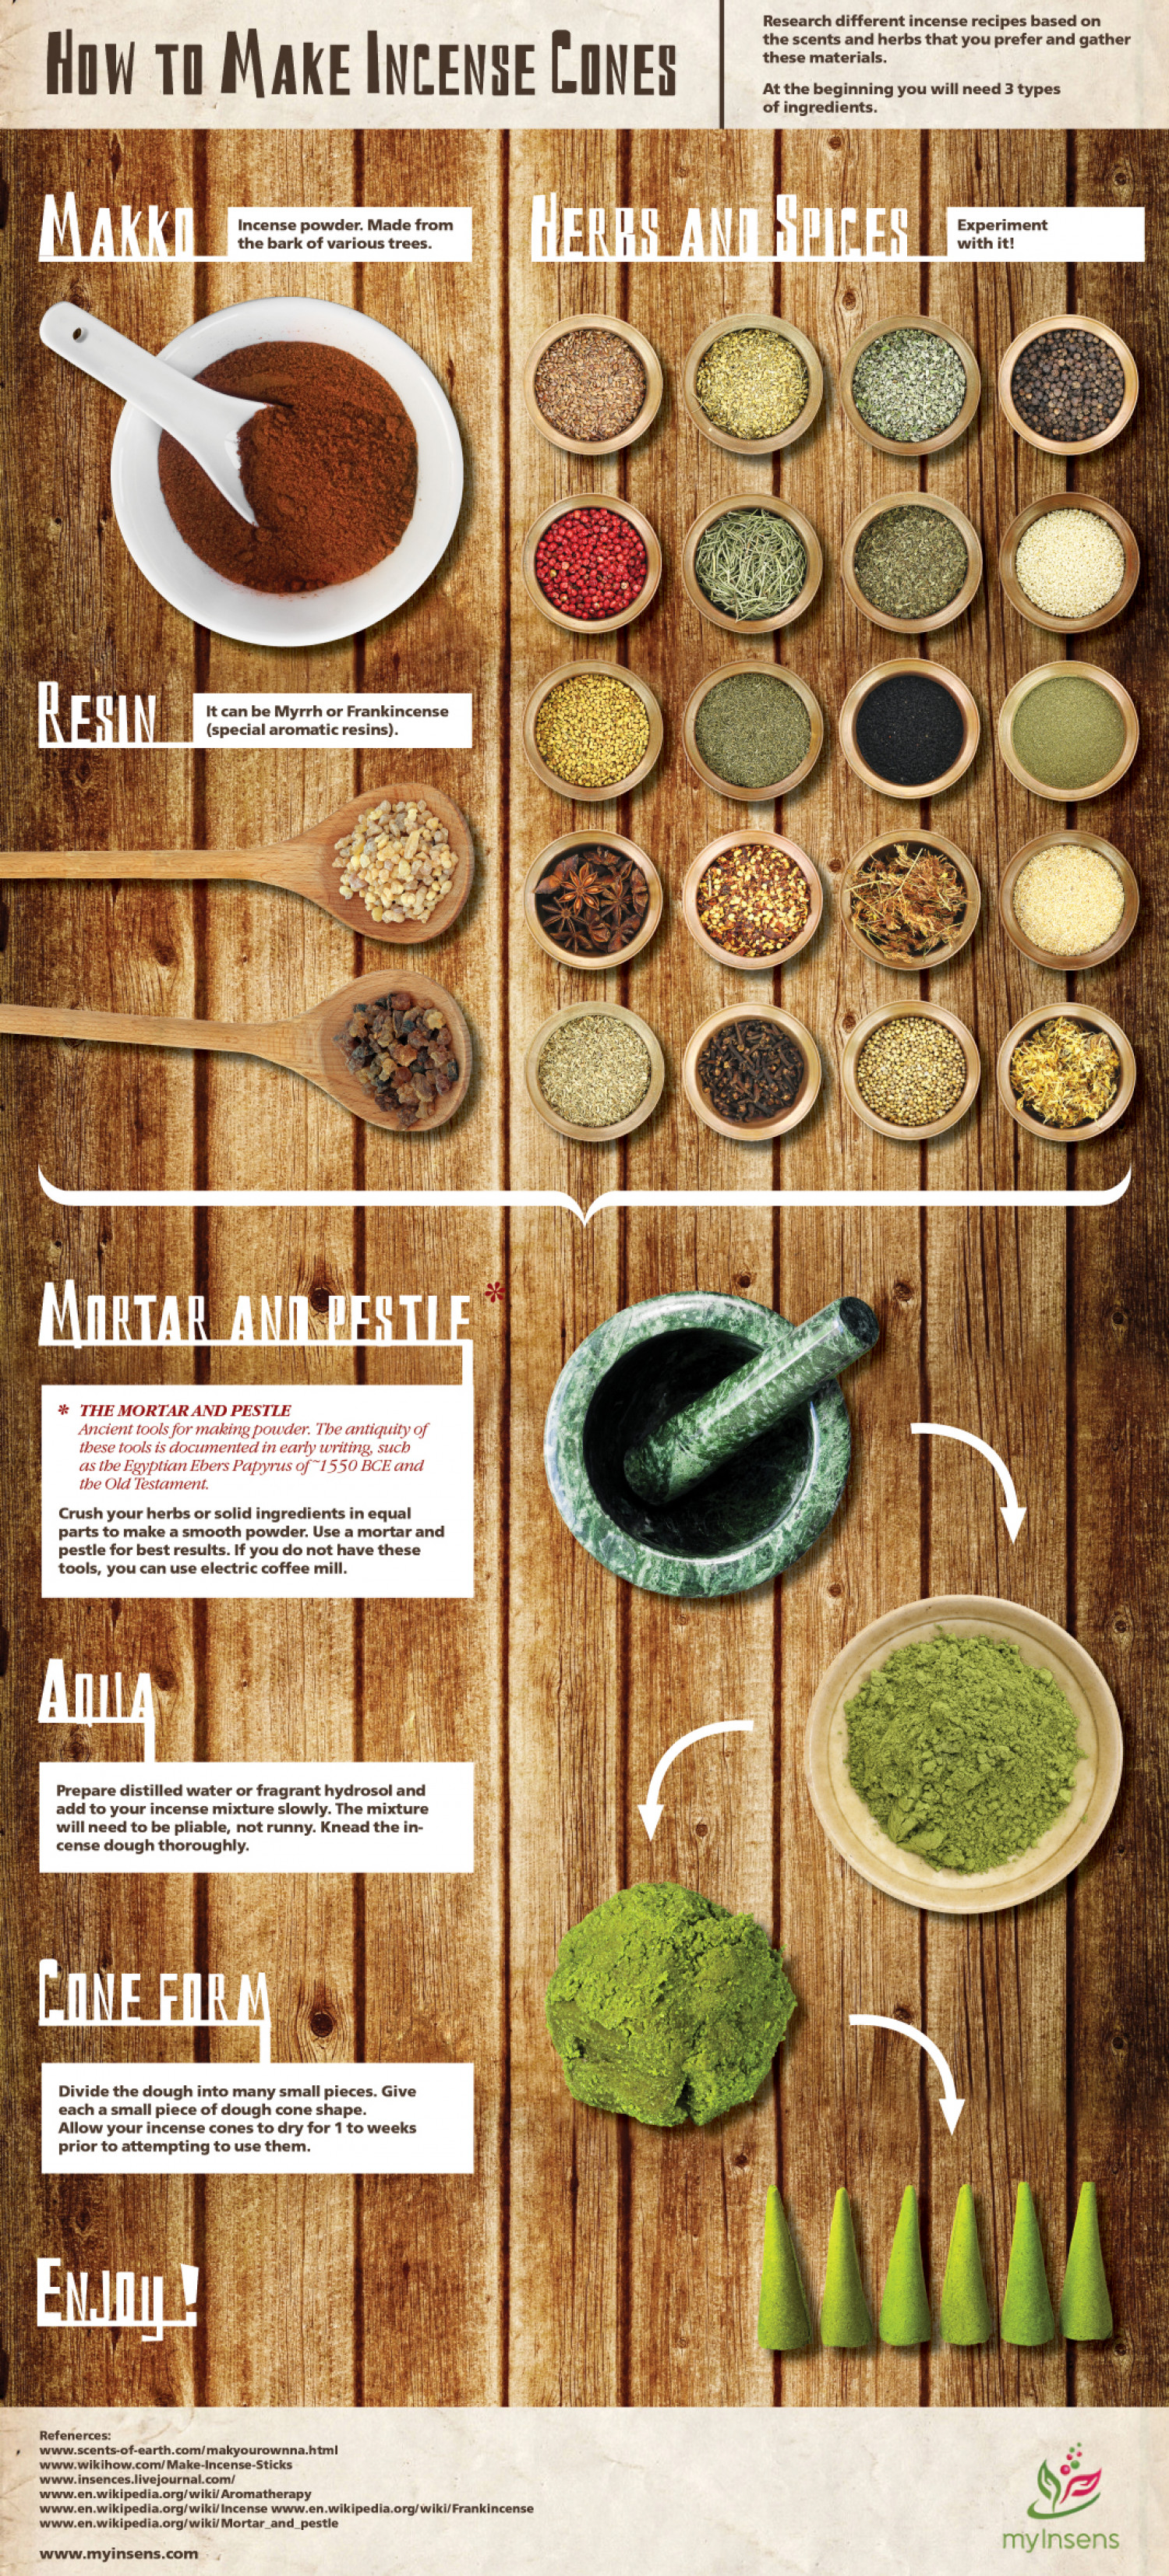 How to make Incense Cones Infographic